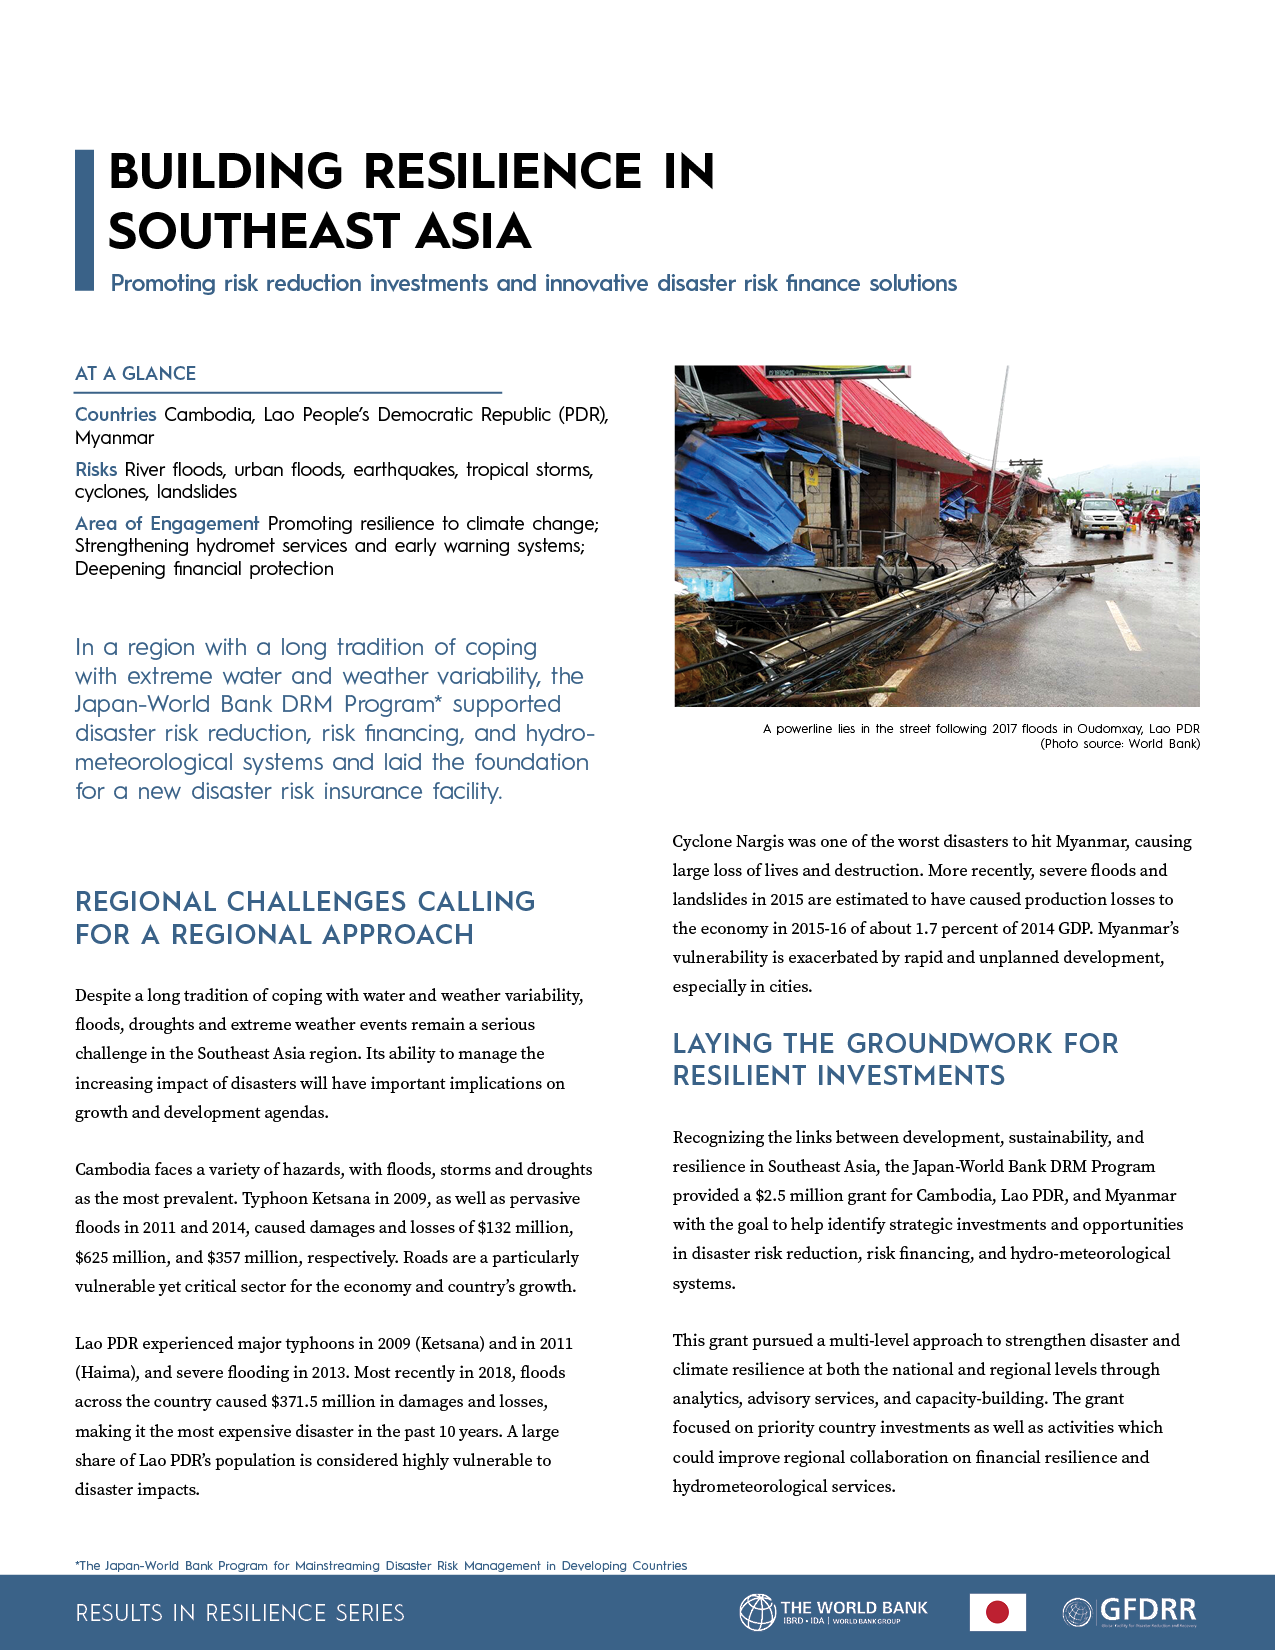 Building Resilience in Southeast Asia